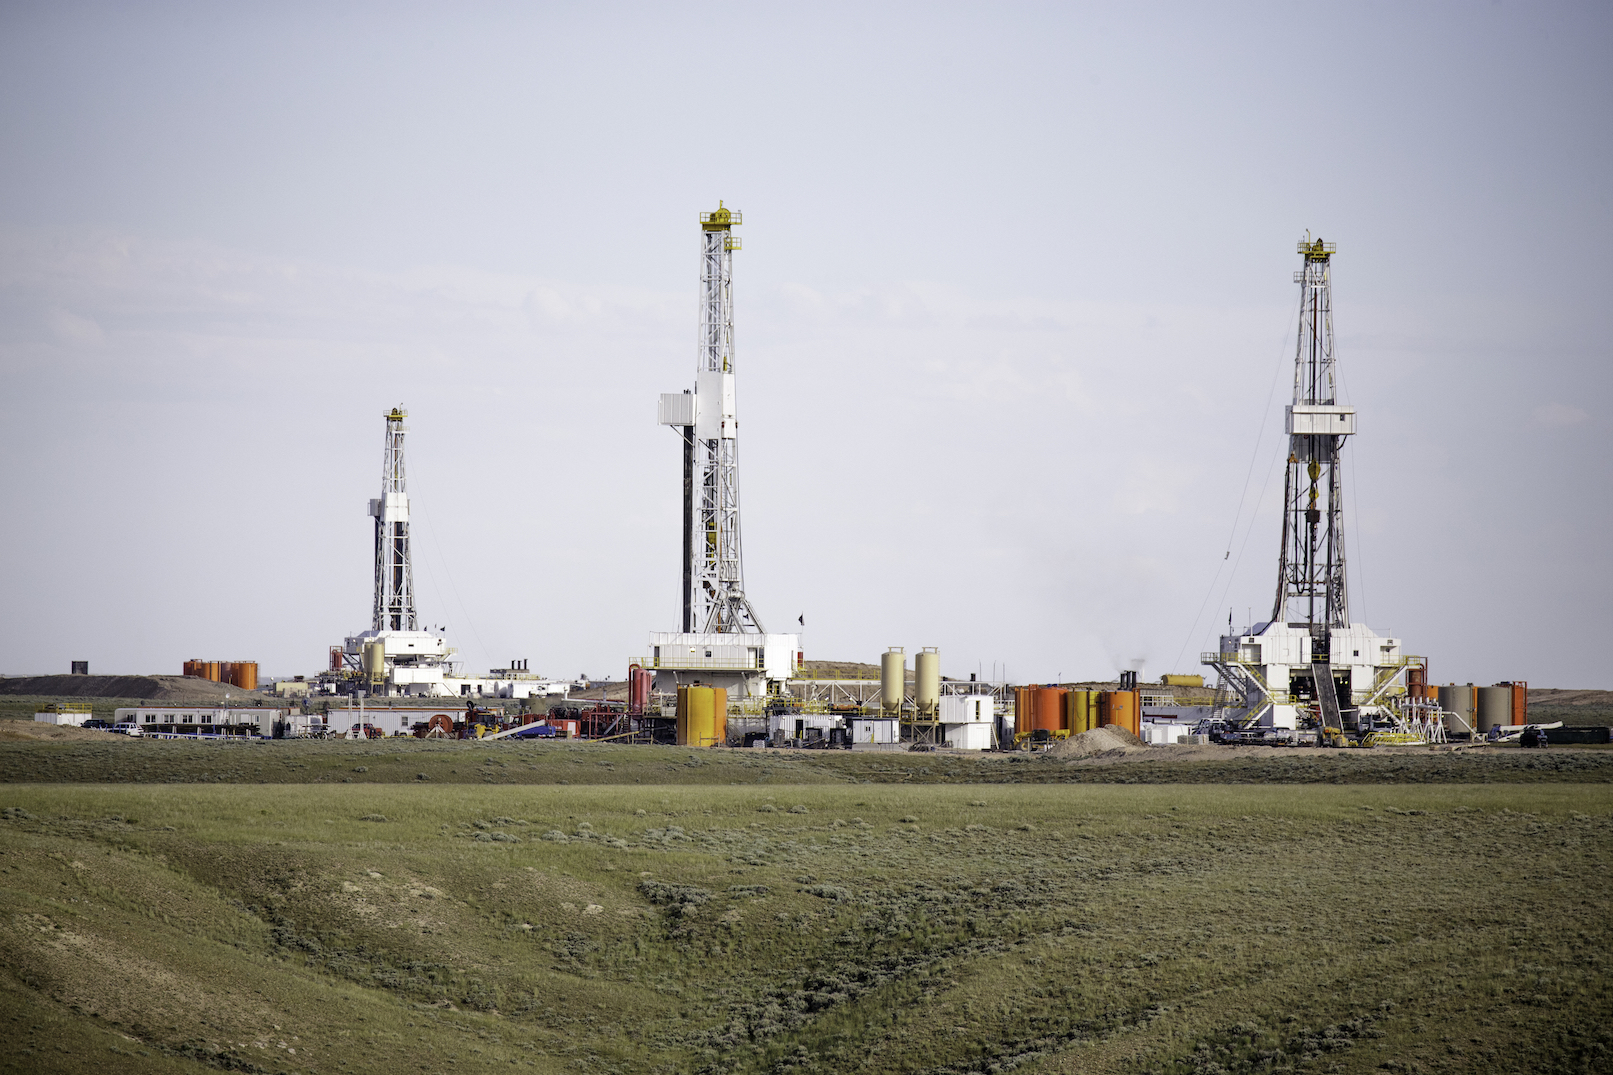 A new study has found that exposure to the chemicals used in fracking can cause an increase in fat cells.